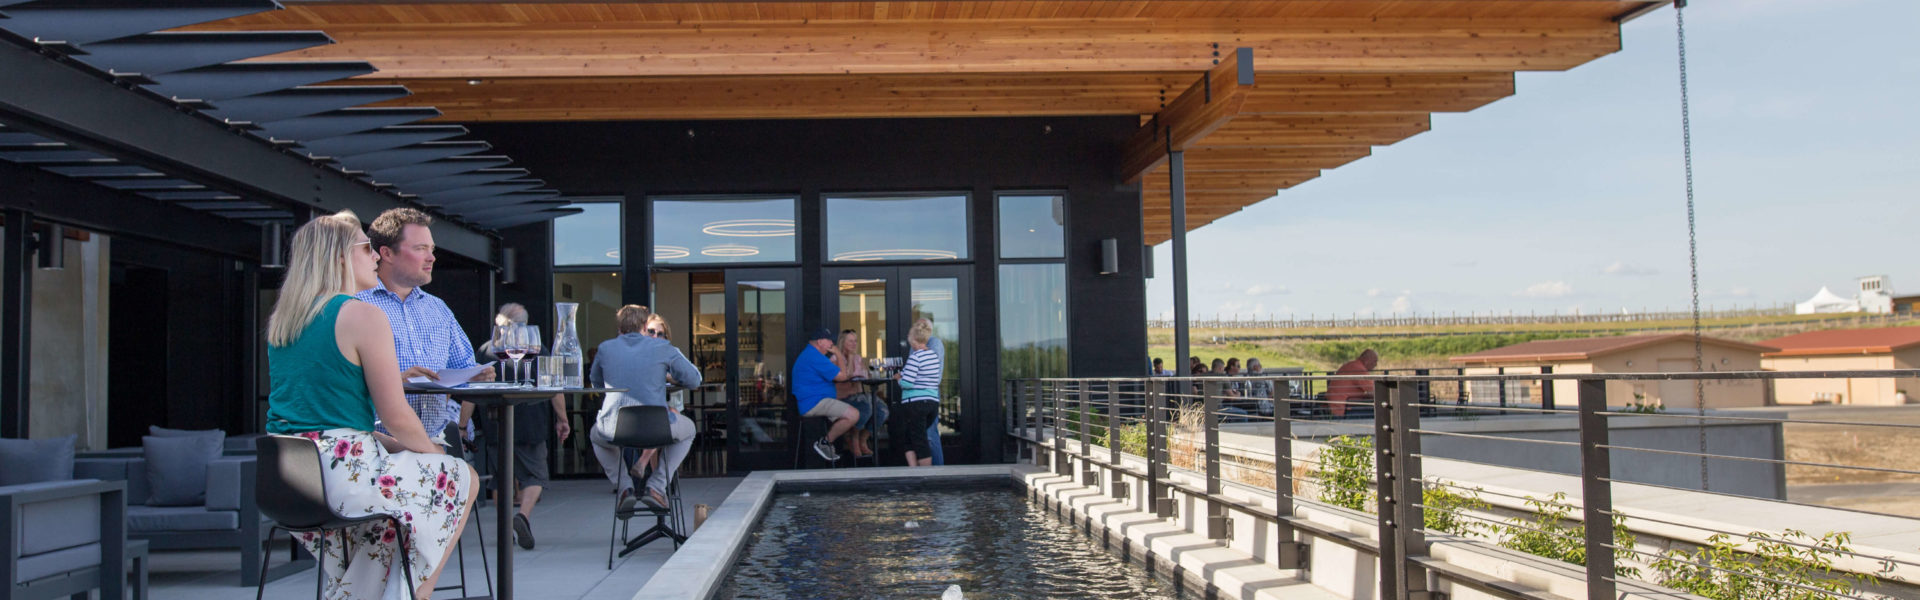 Patio seating at Valdemar Estates winery in Walla Walla